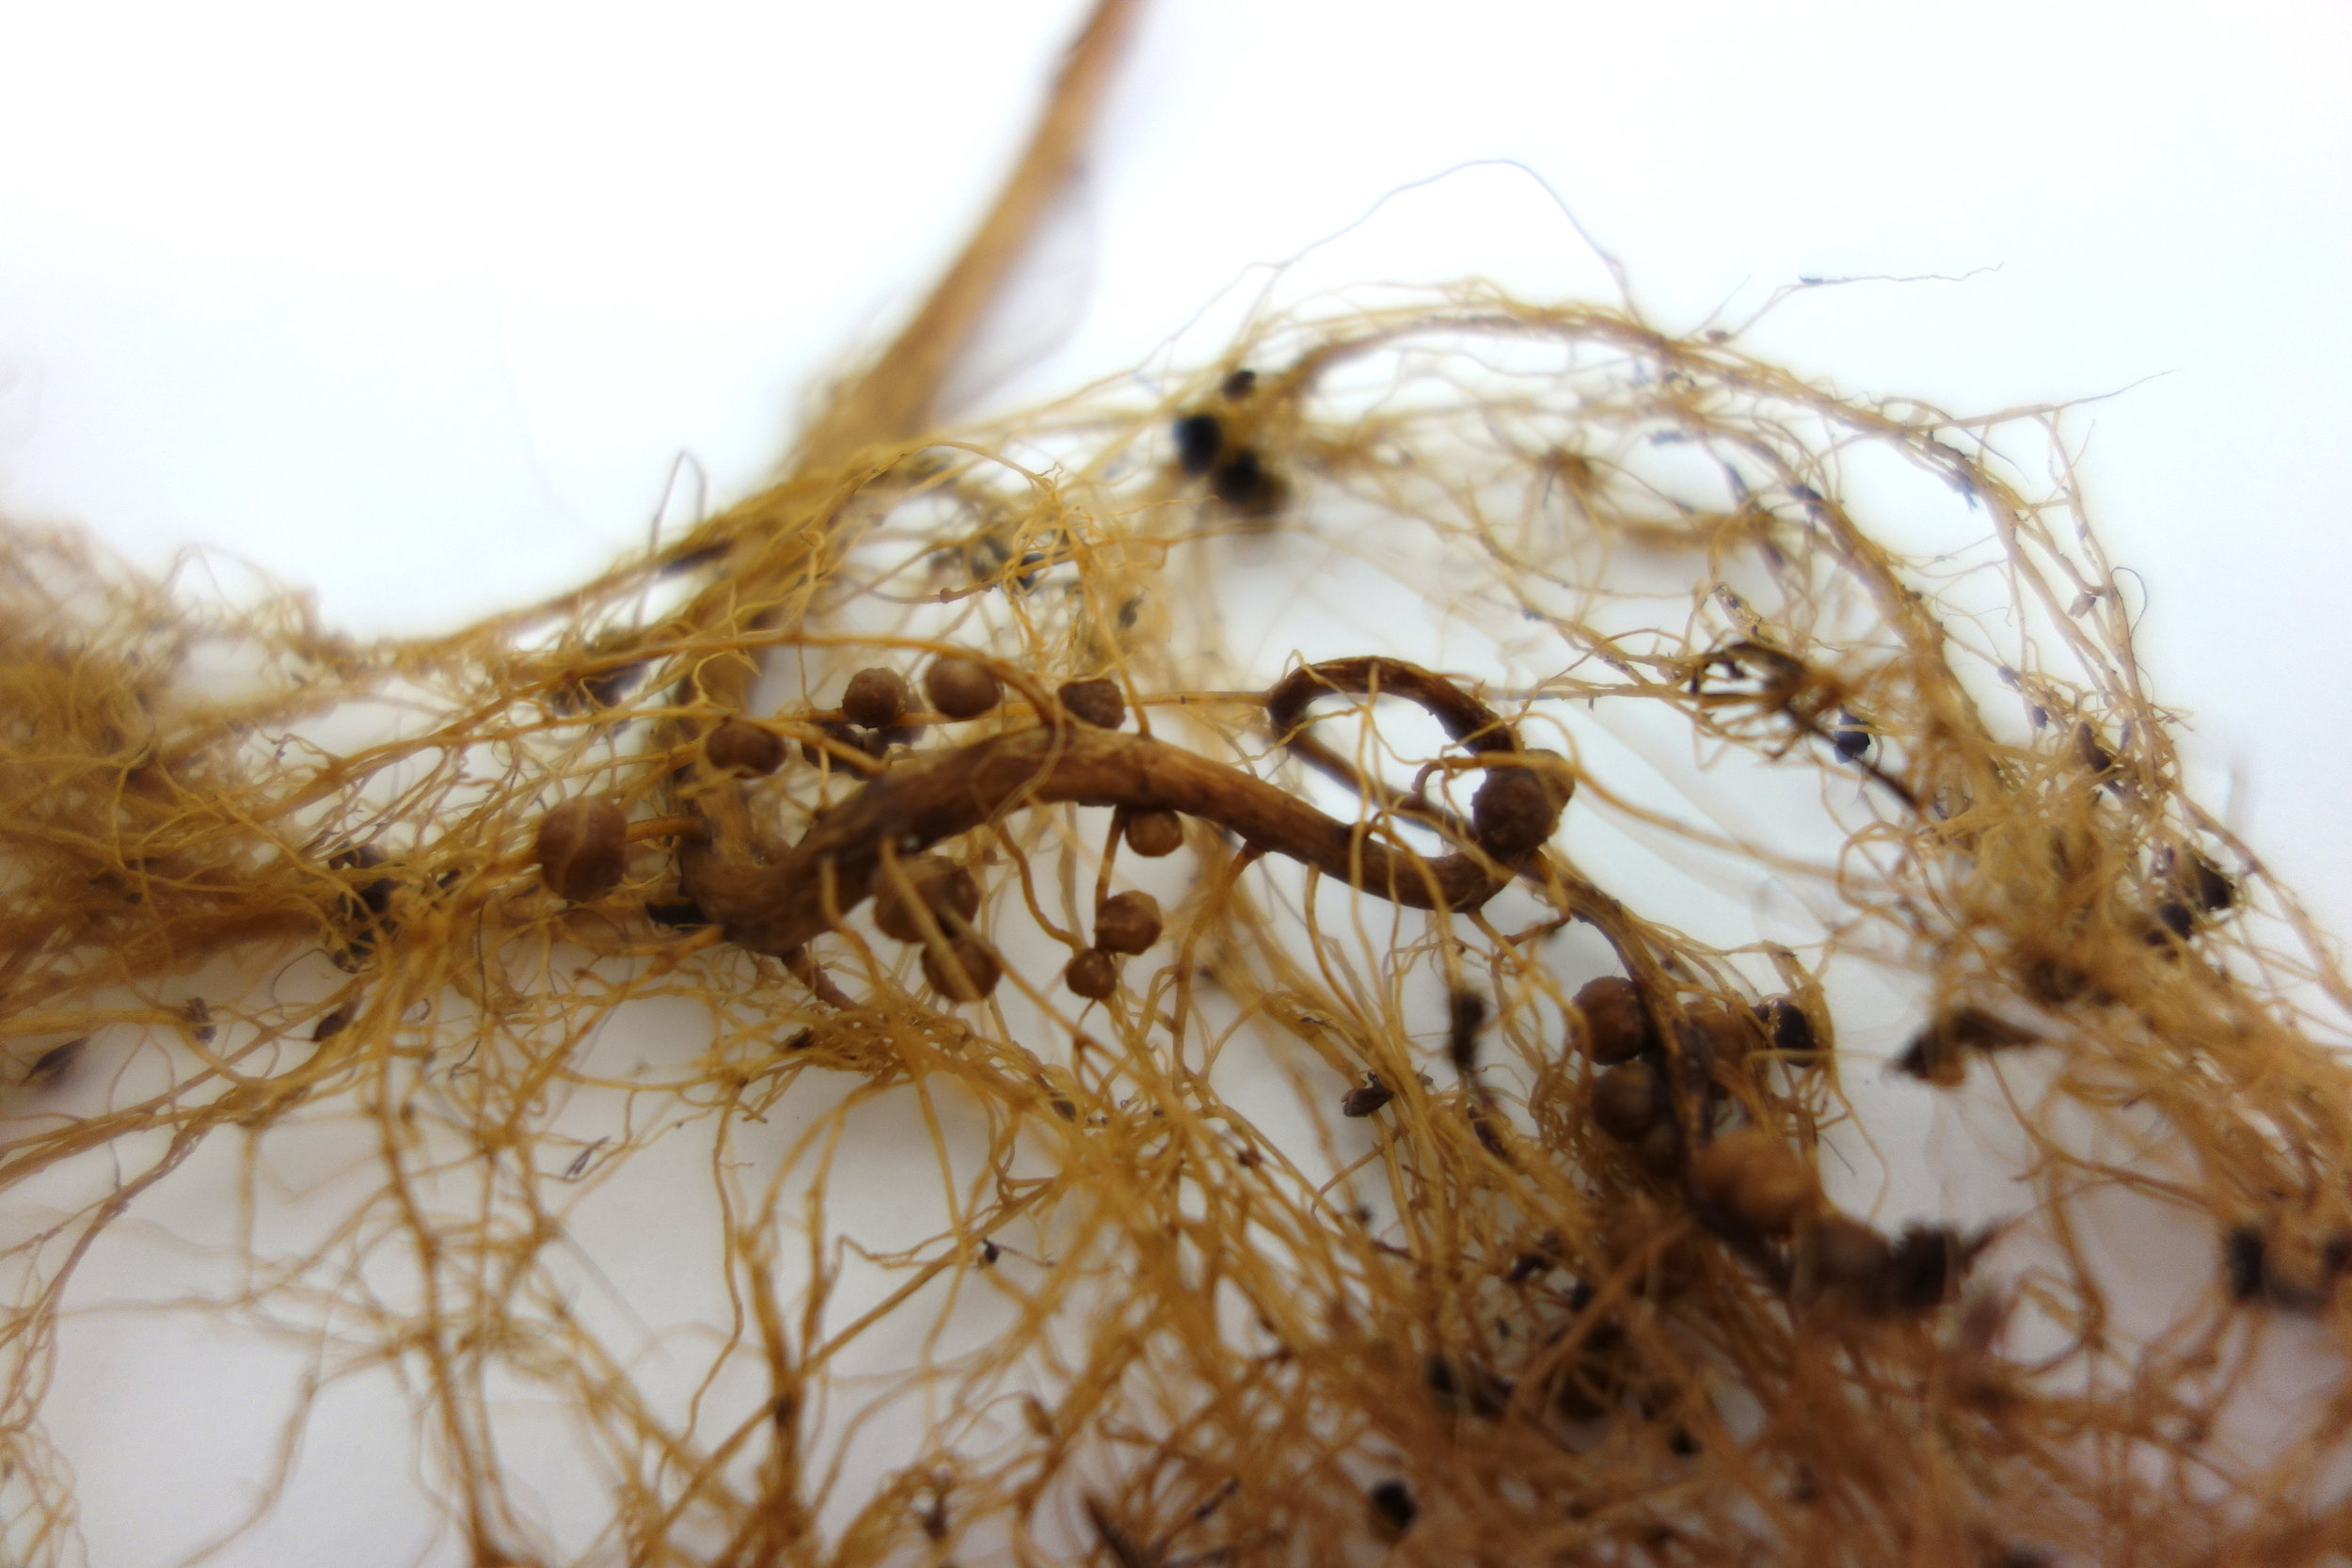 Root nodules of leguminous plants